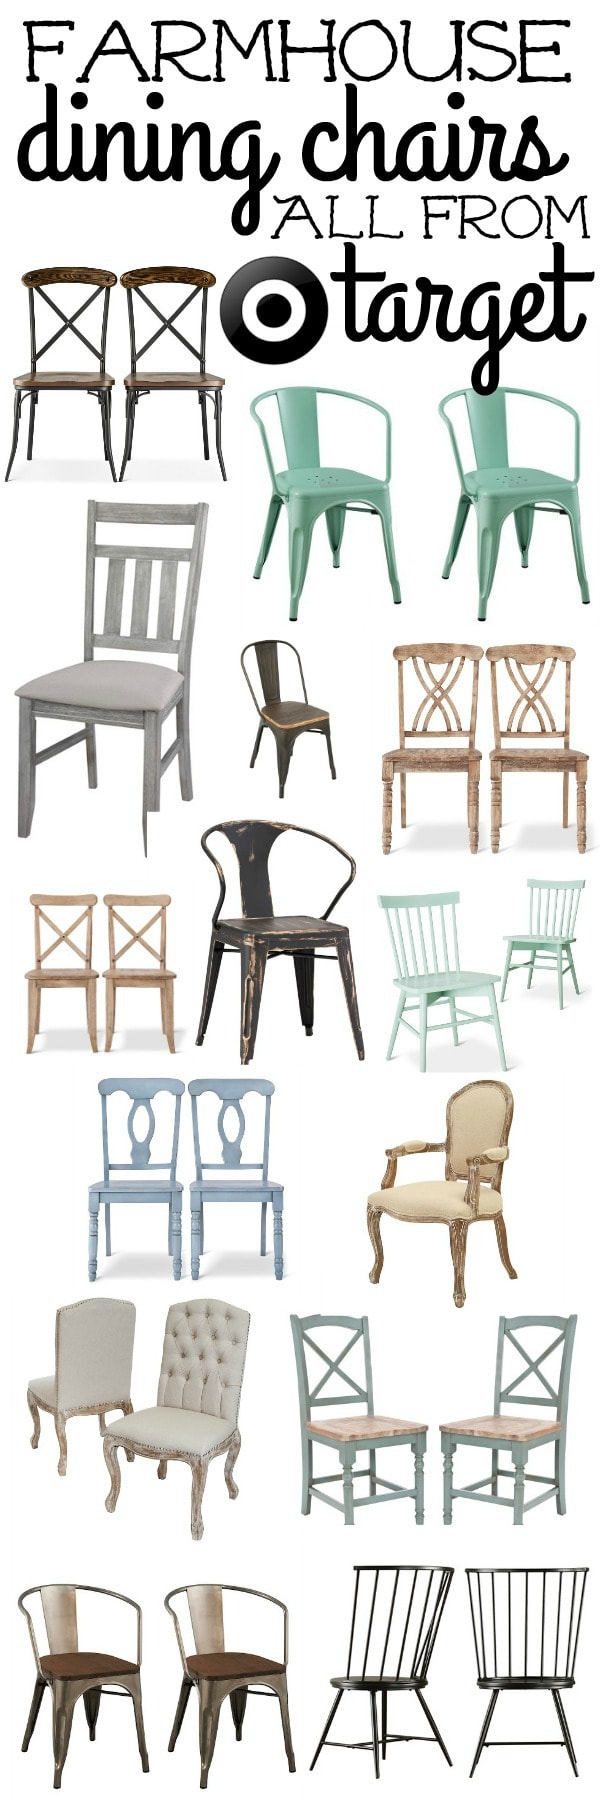 The best farmhouse dining room chairs. Great chairs that will add that rustic farmhouse vibe to any dining room.